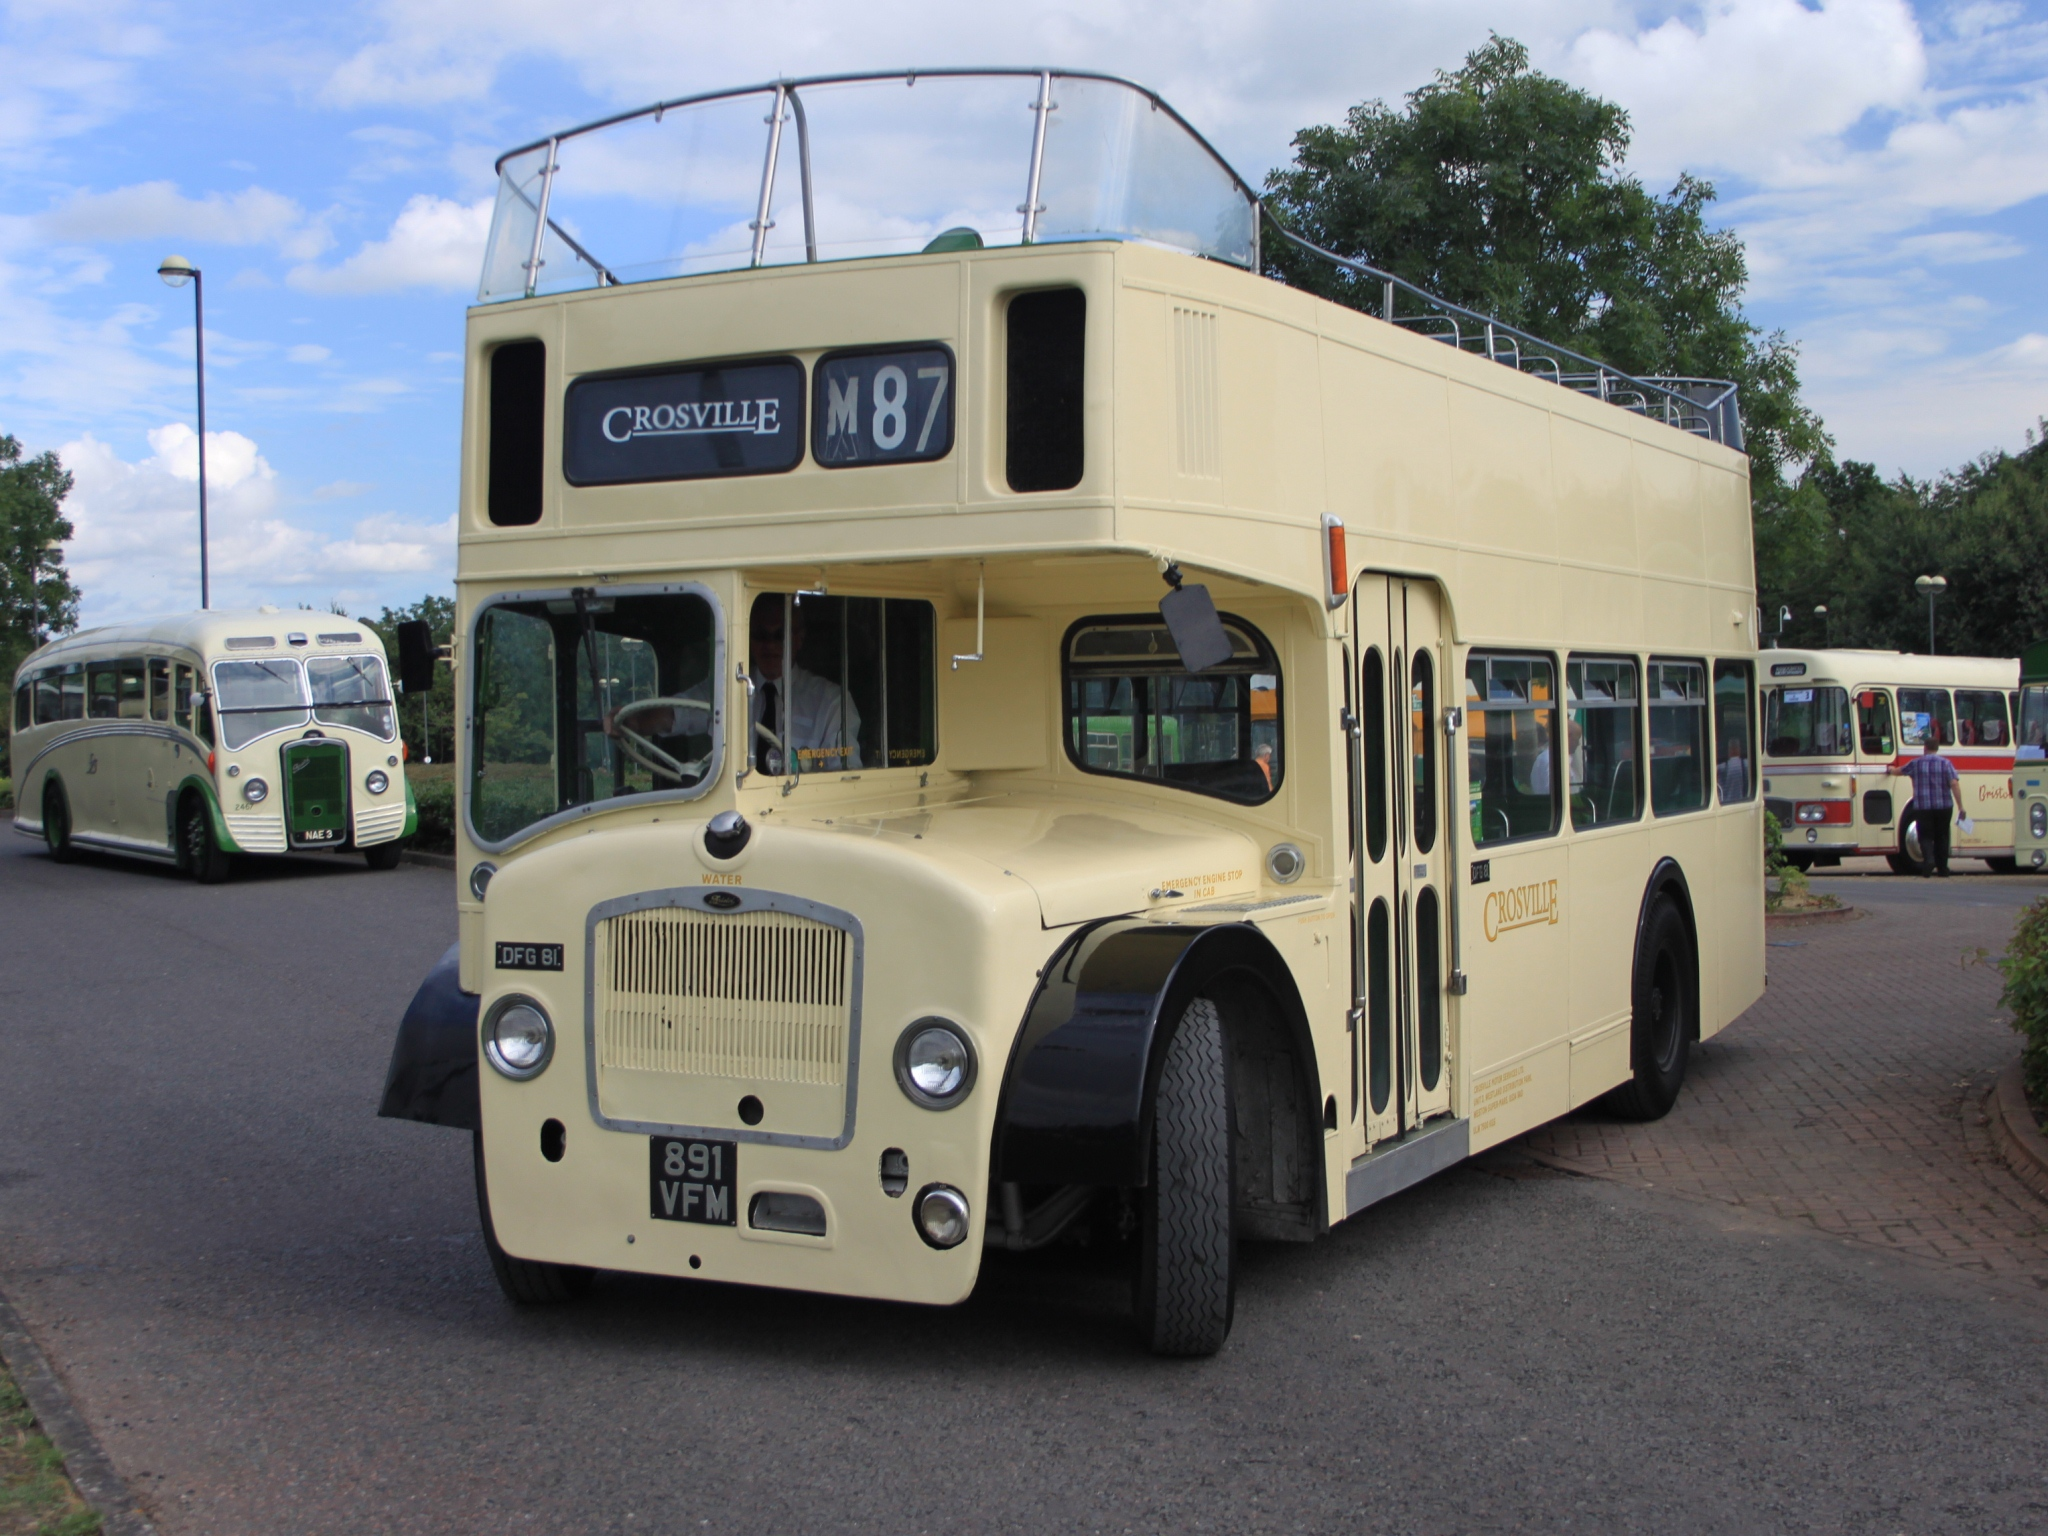 File:Brislington - Crosville DFG81 891VFM and Bristol 2467 NAE3.jpg